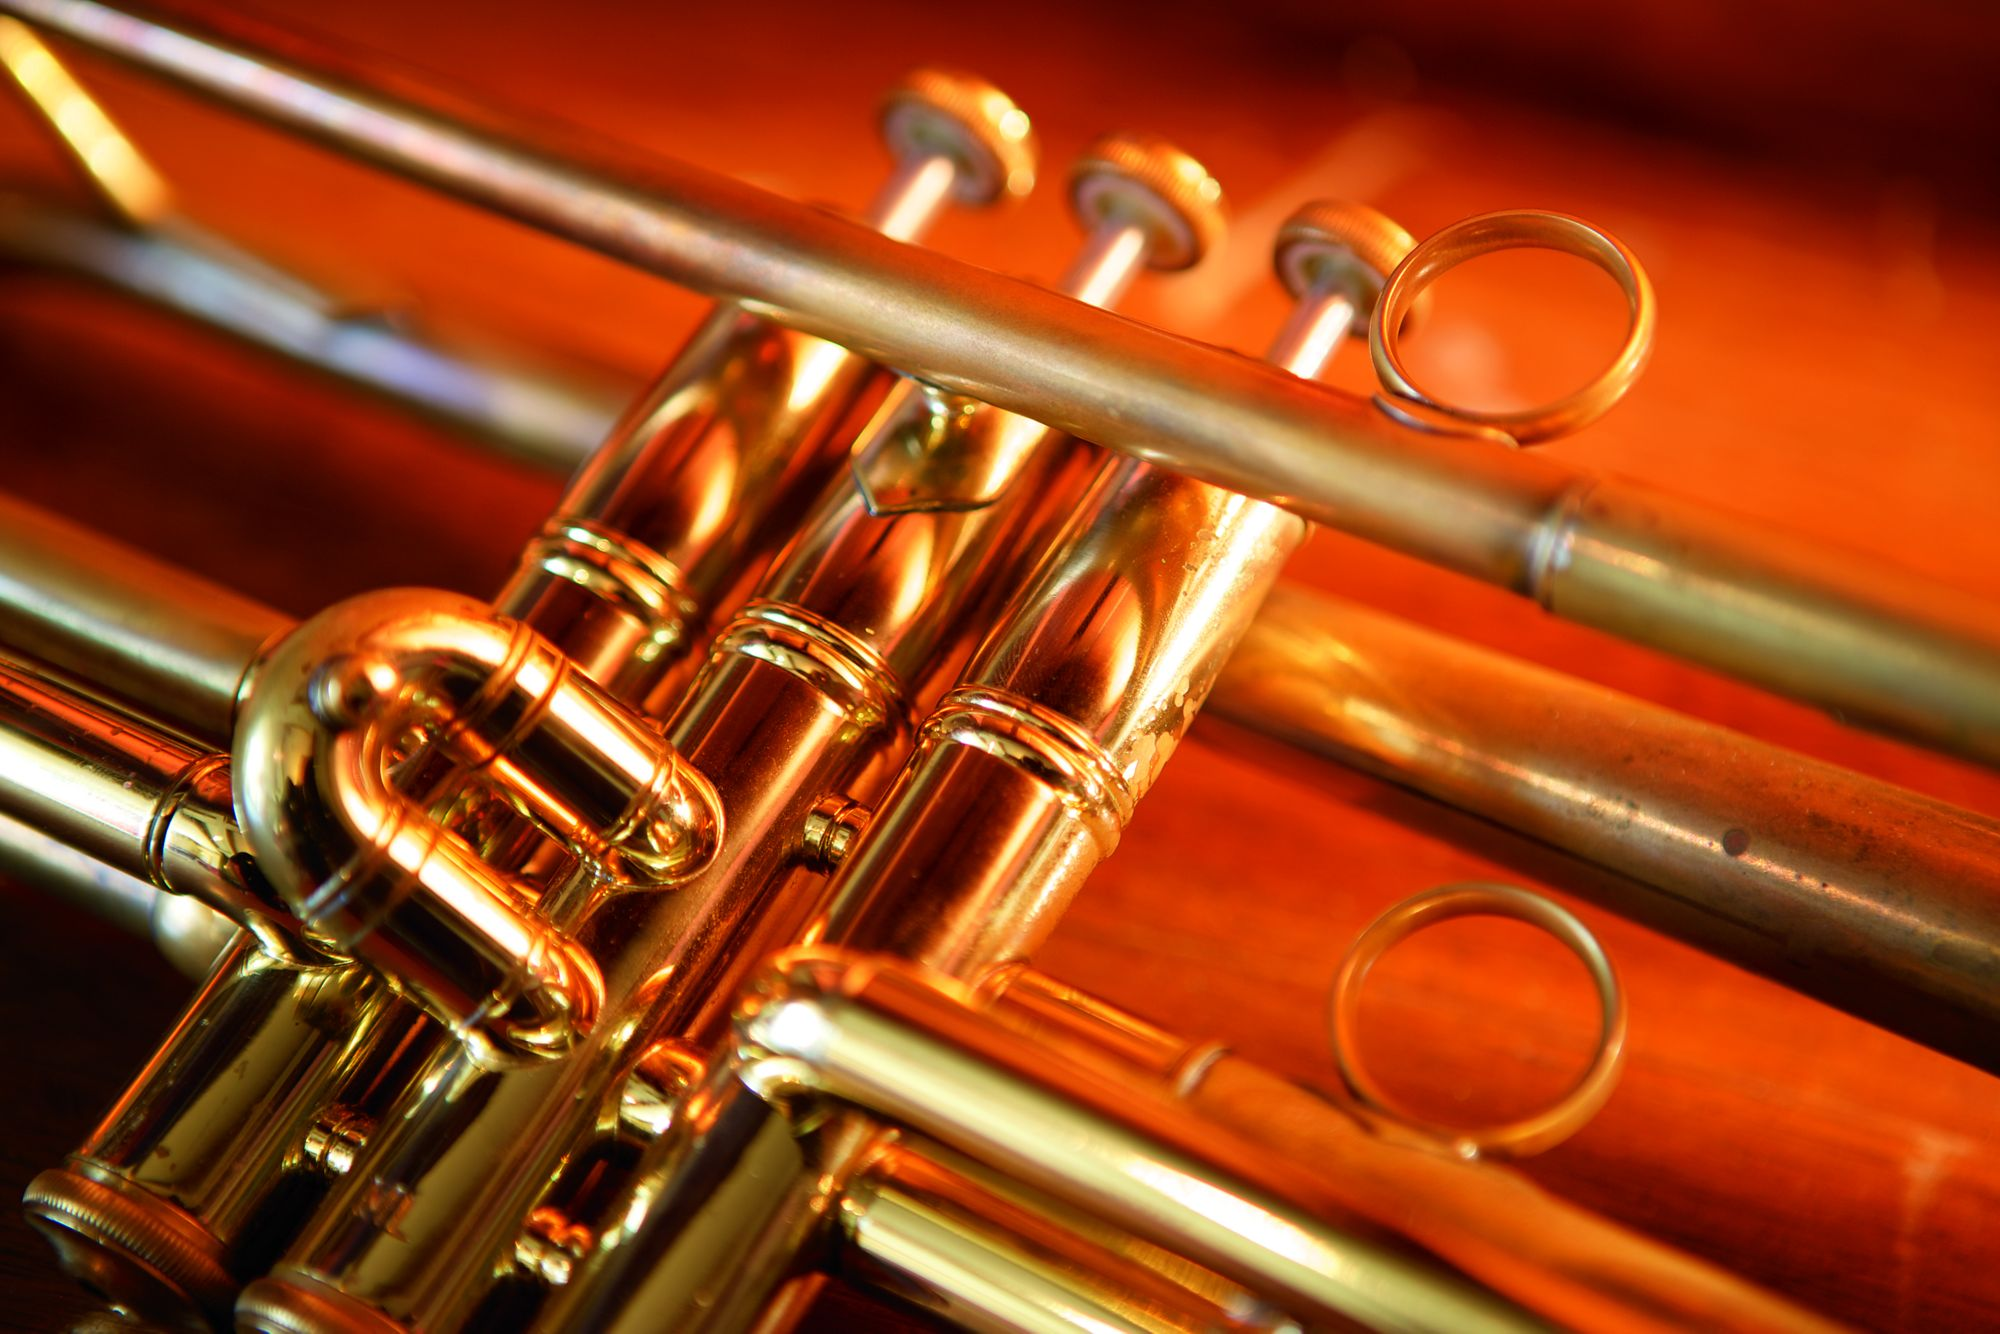 Close-up of a trumpet